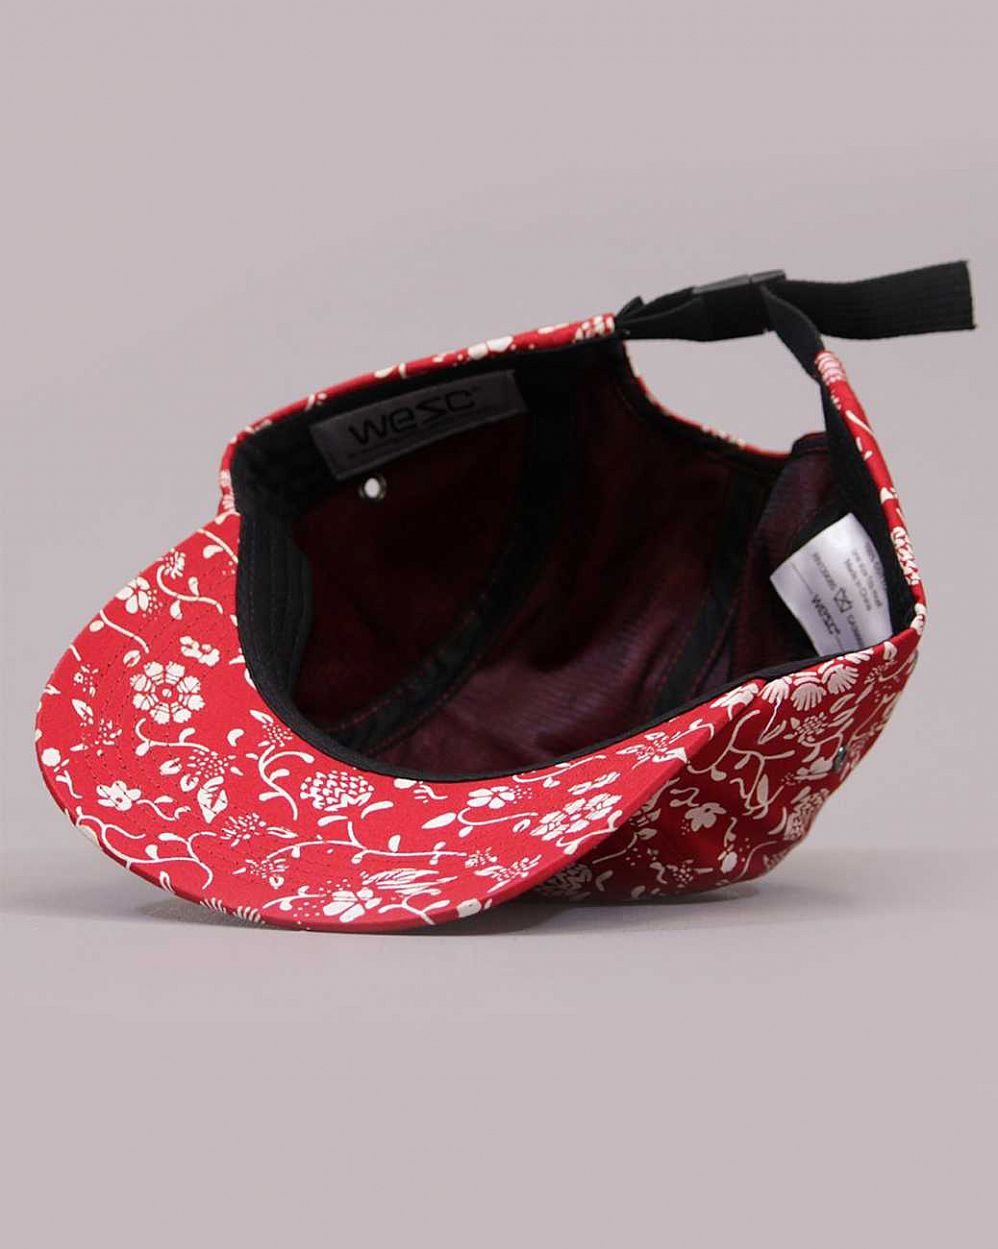 Бейсболка Wesc HawaiWe 5 Panel Unisex Baseball Jester red цена в Москве